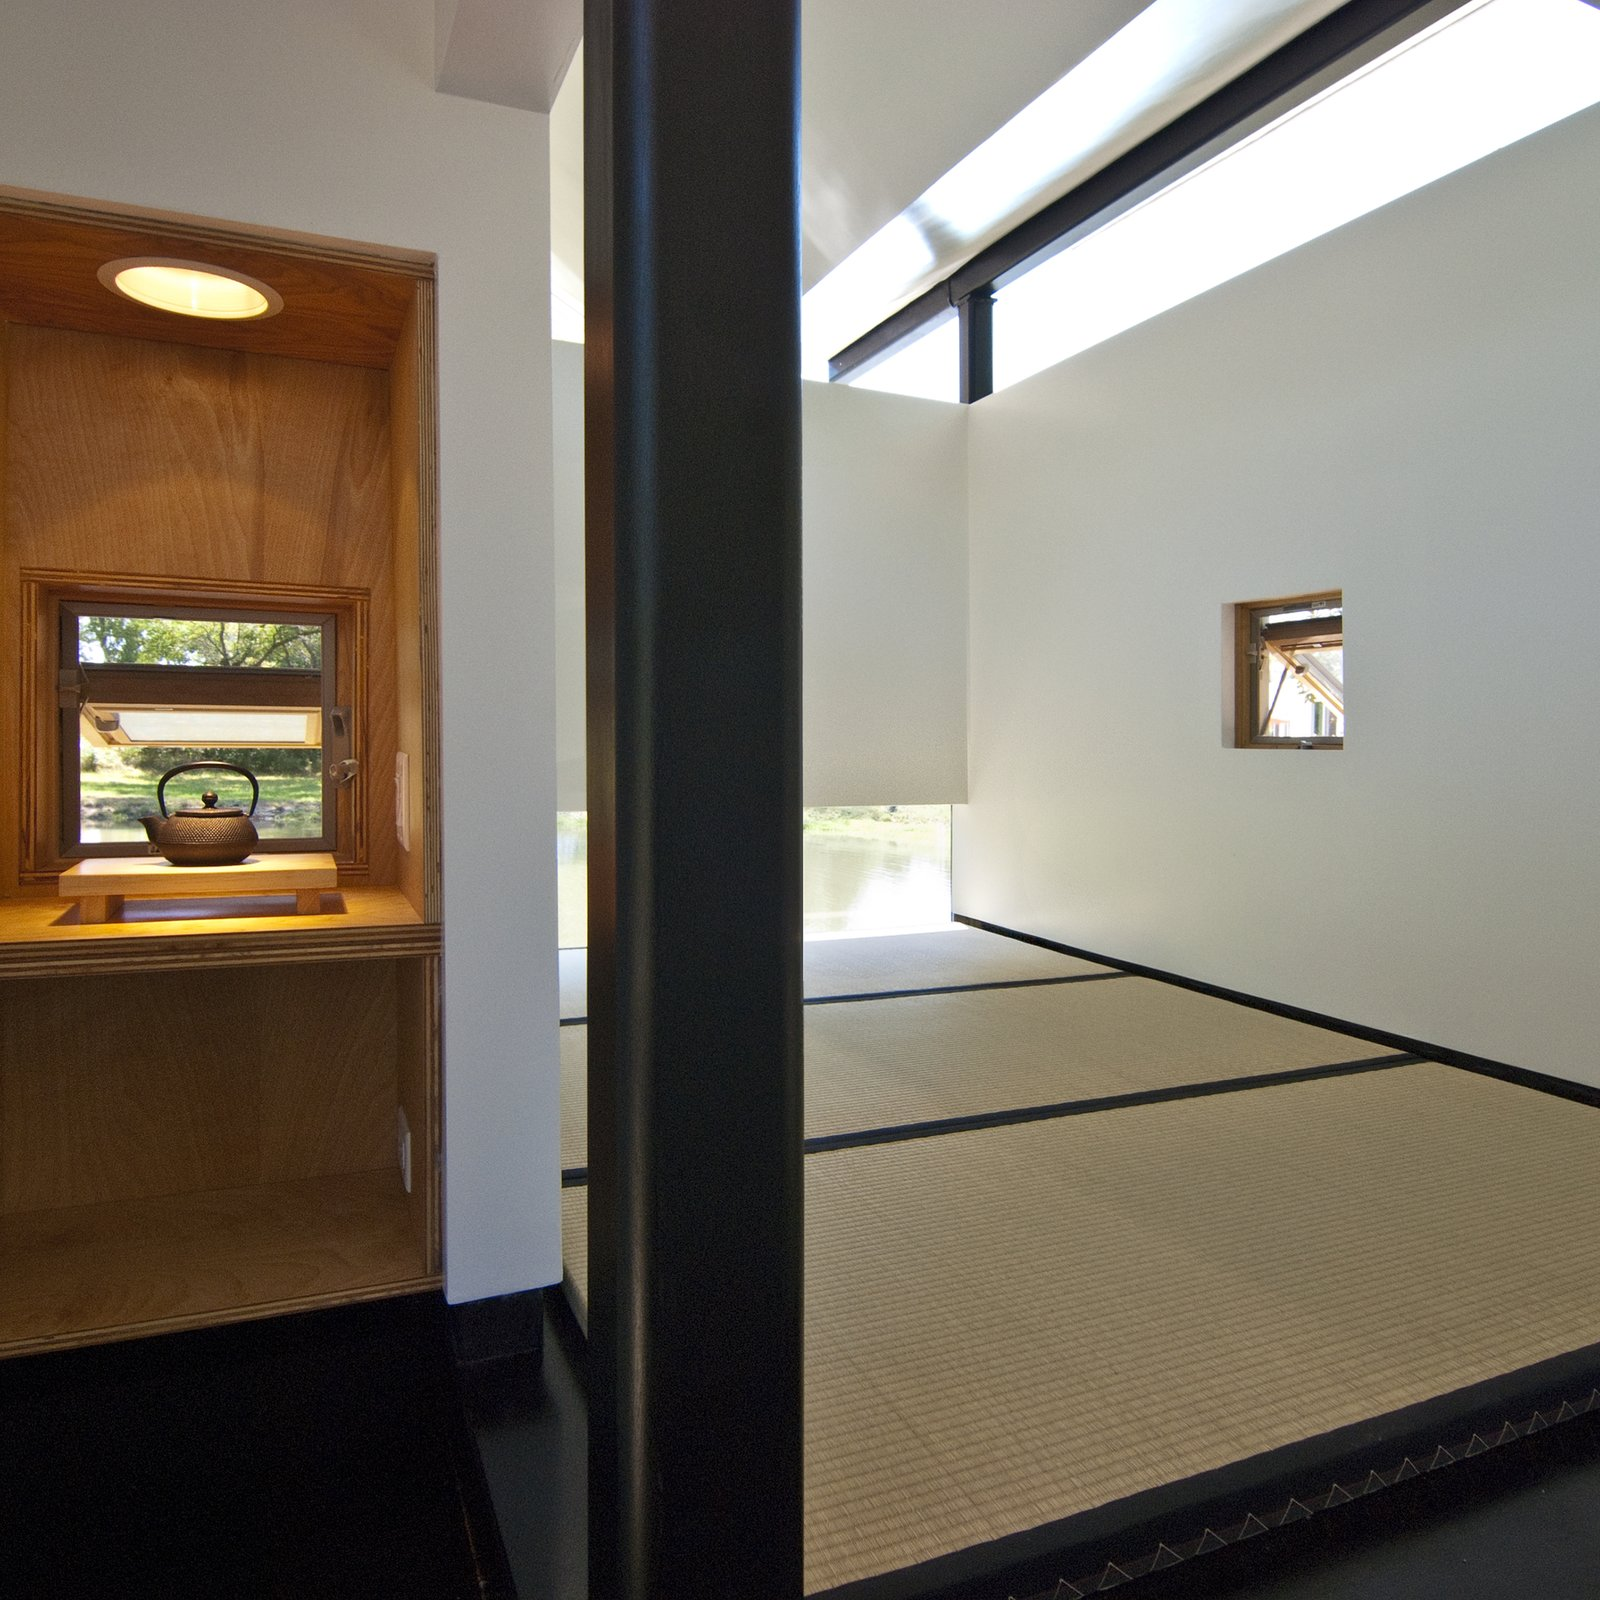 Living Room  Photo 7 of 13 in 6 Tiny Outdoor Pavilions Inspired by Japanese Tearooms